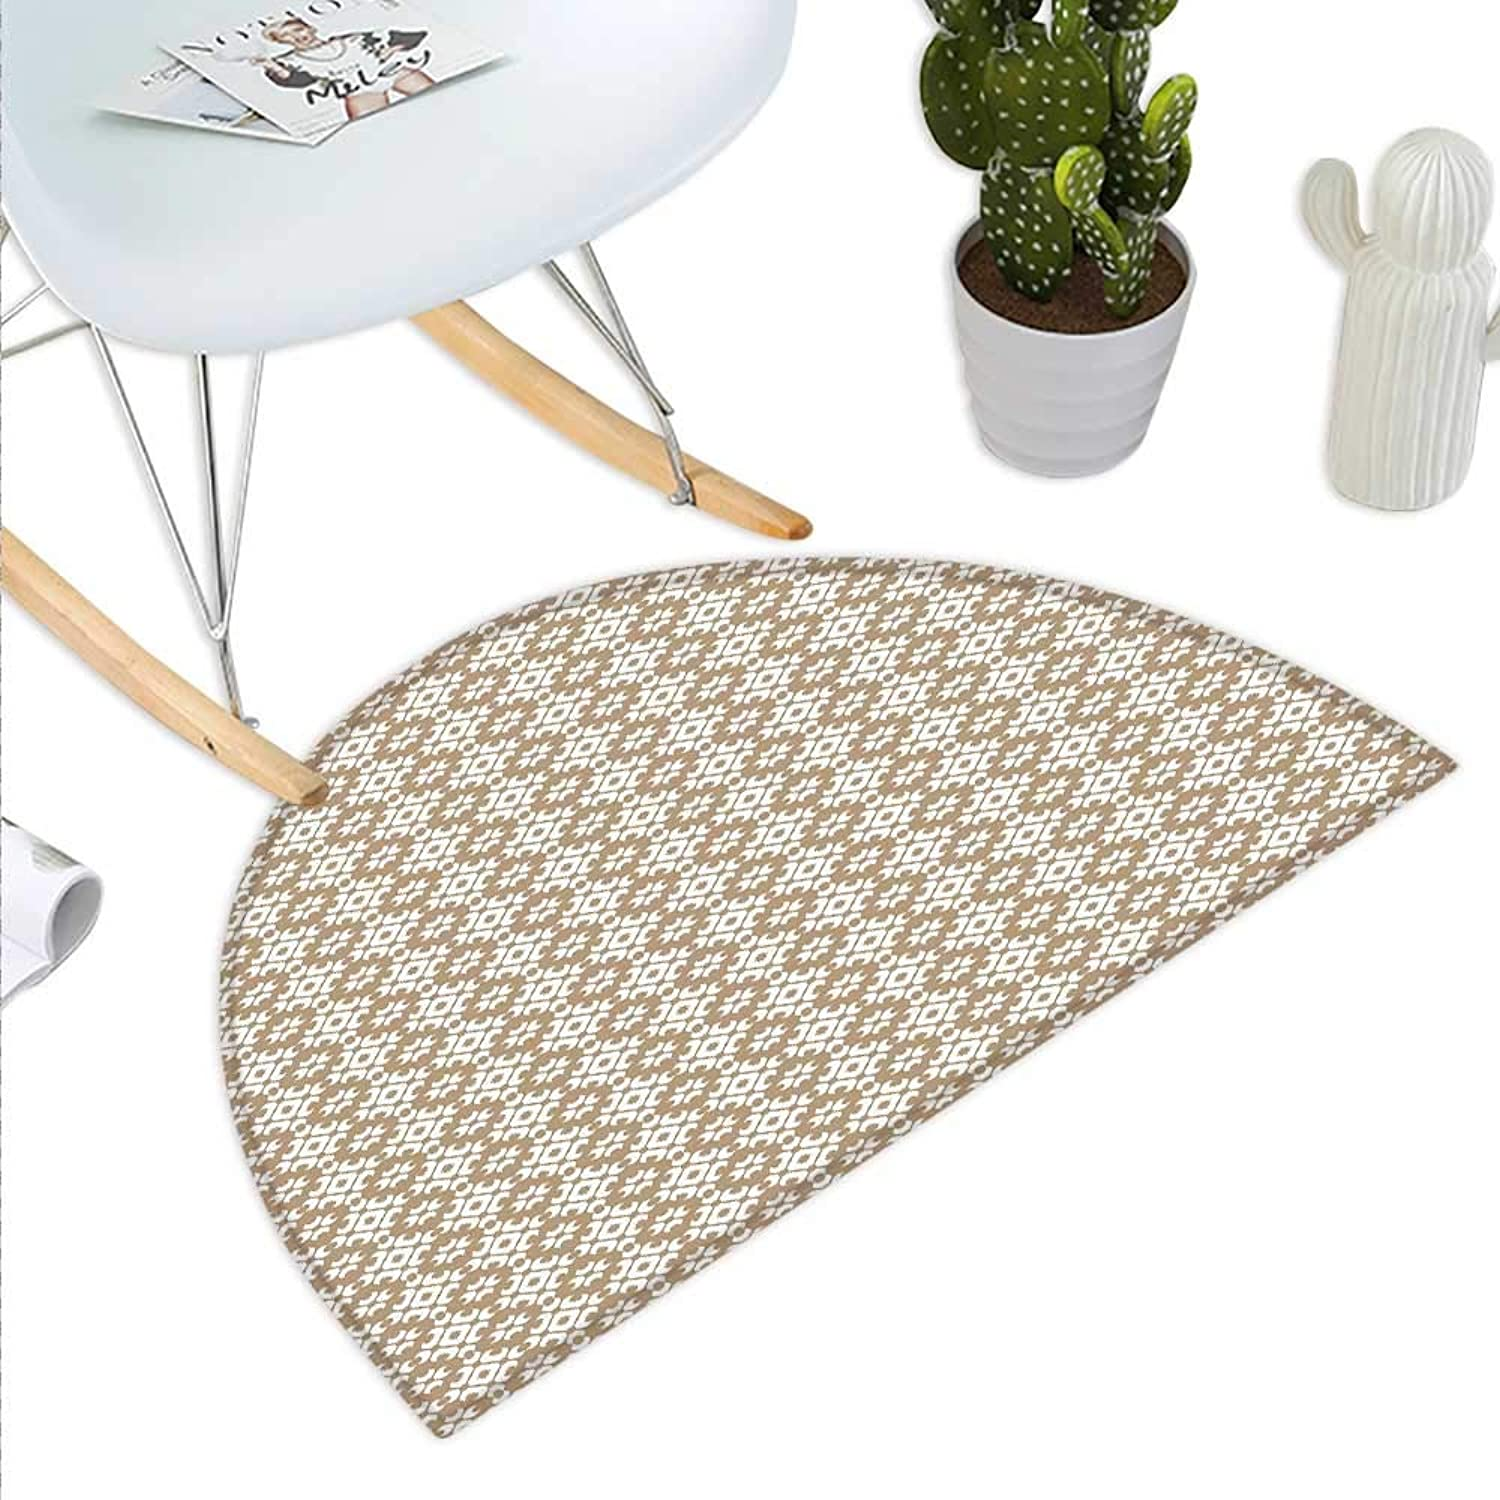 Beige Semicircle Doormat Geometric Arrangement with Diamond Pattern Circular Abstract Shapes Dotted Design Halfmoon doormats H 39.3  xD 59  Beige White